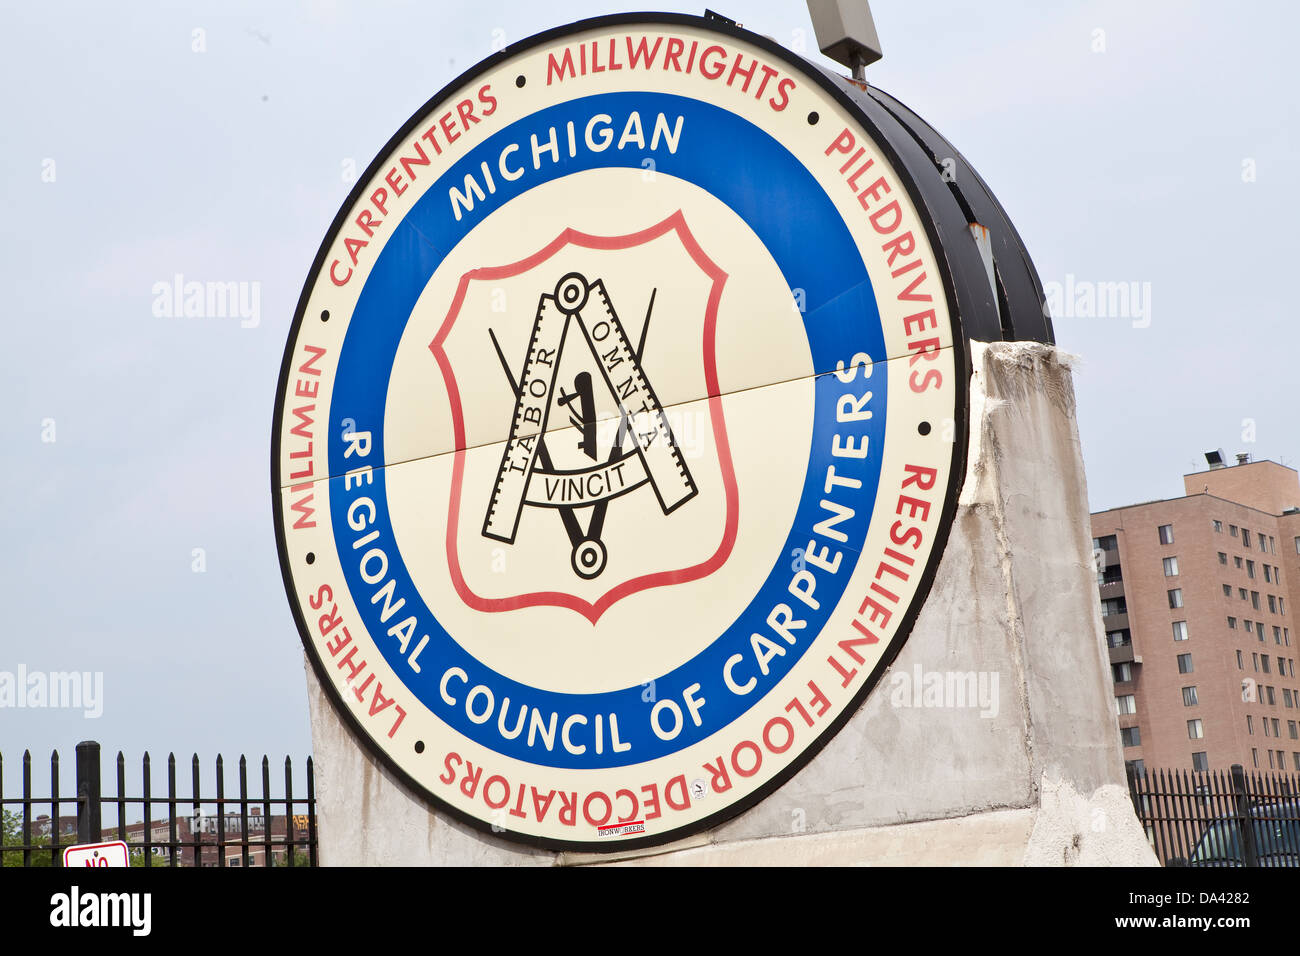 The Michigan Regional Council of Carpenters & Millwrights logo is seen in Detroit - Stock Image